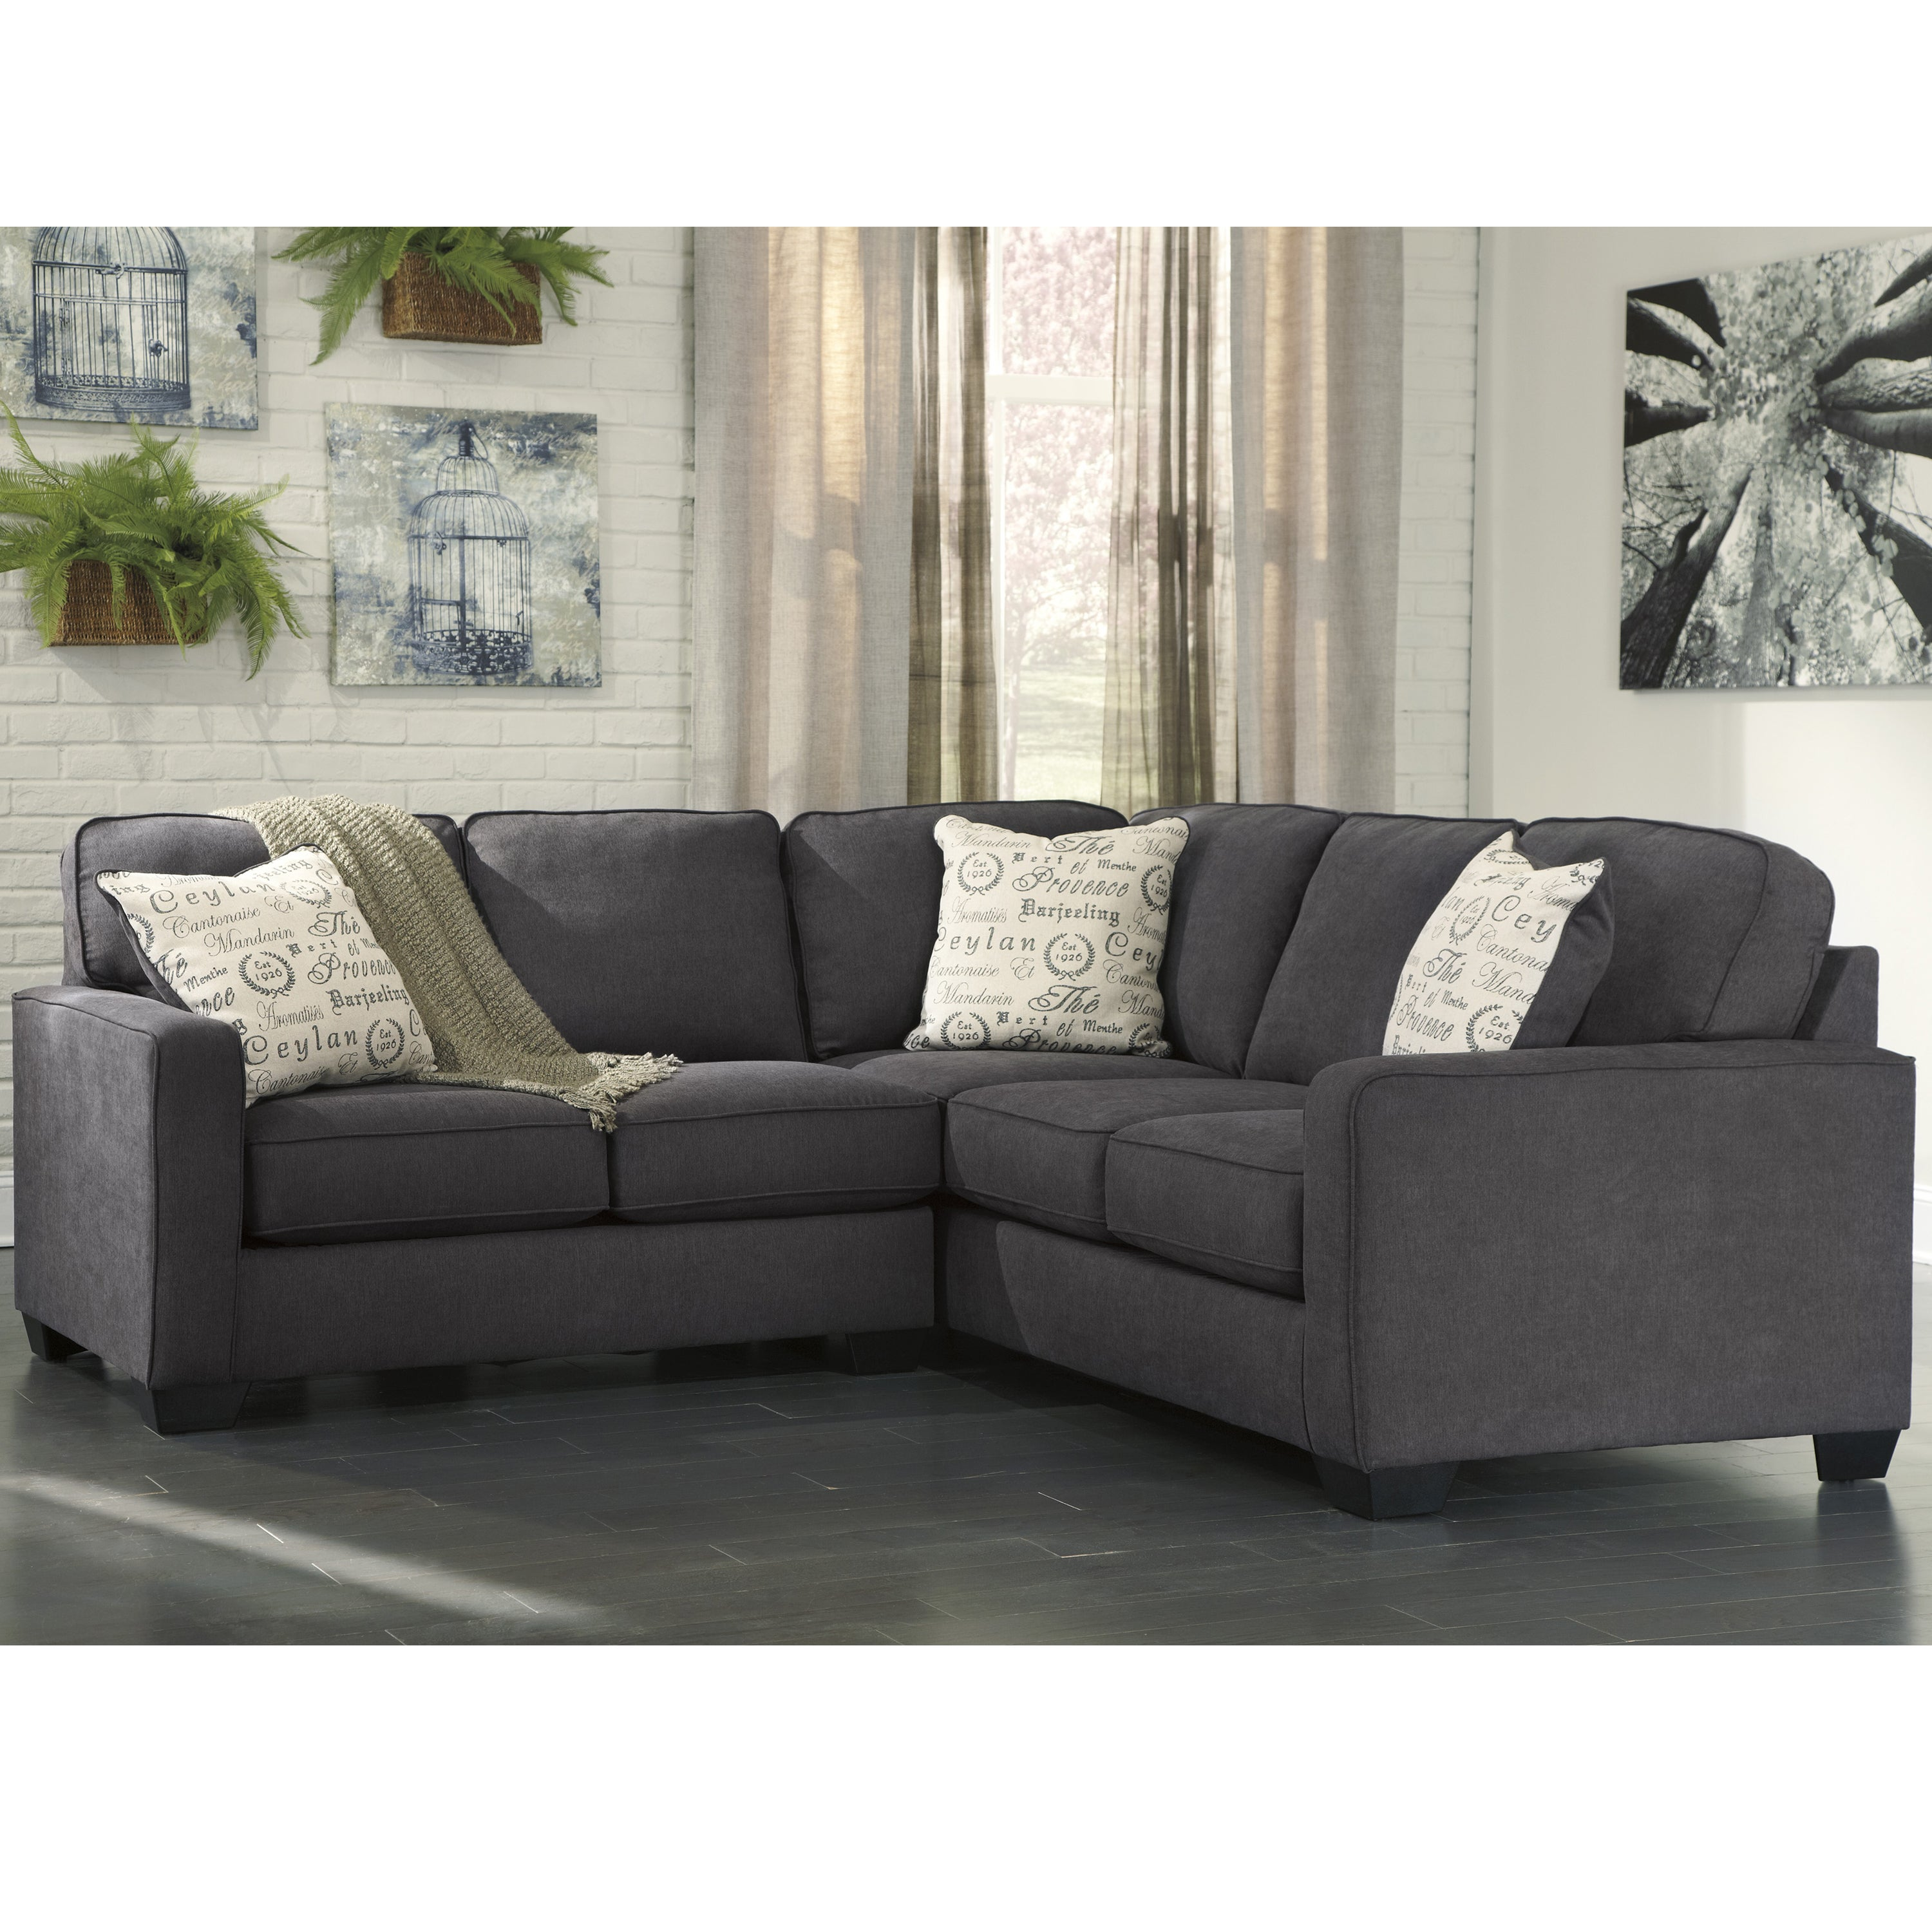 Signature Design By Ashley Alenya 2 Piece Sofa Sectional In Microfiber Free Shipping Today 15372080